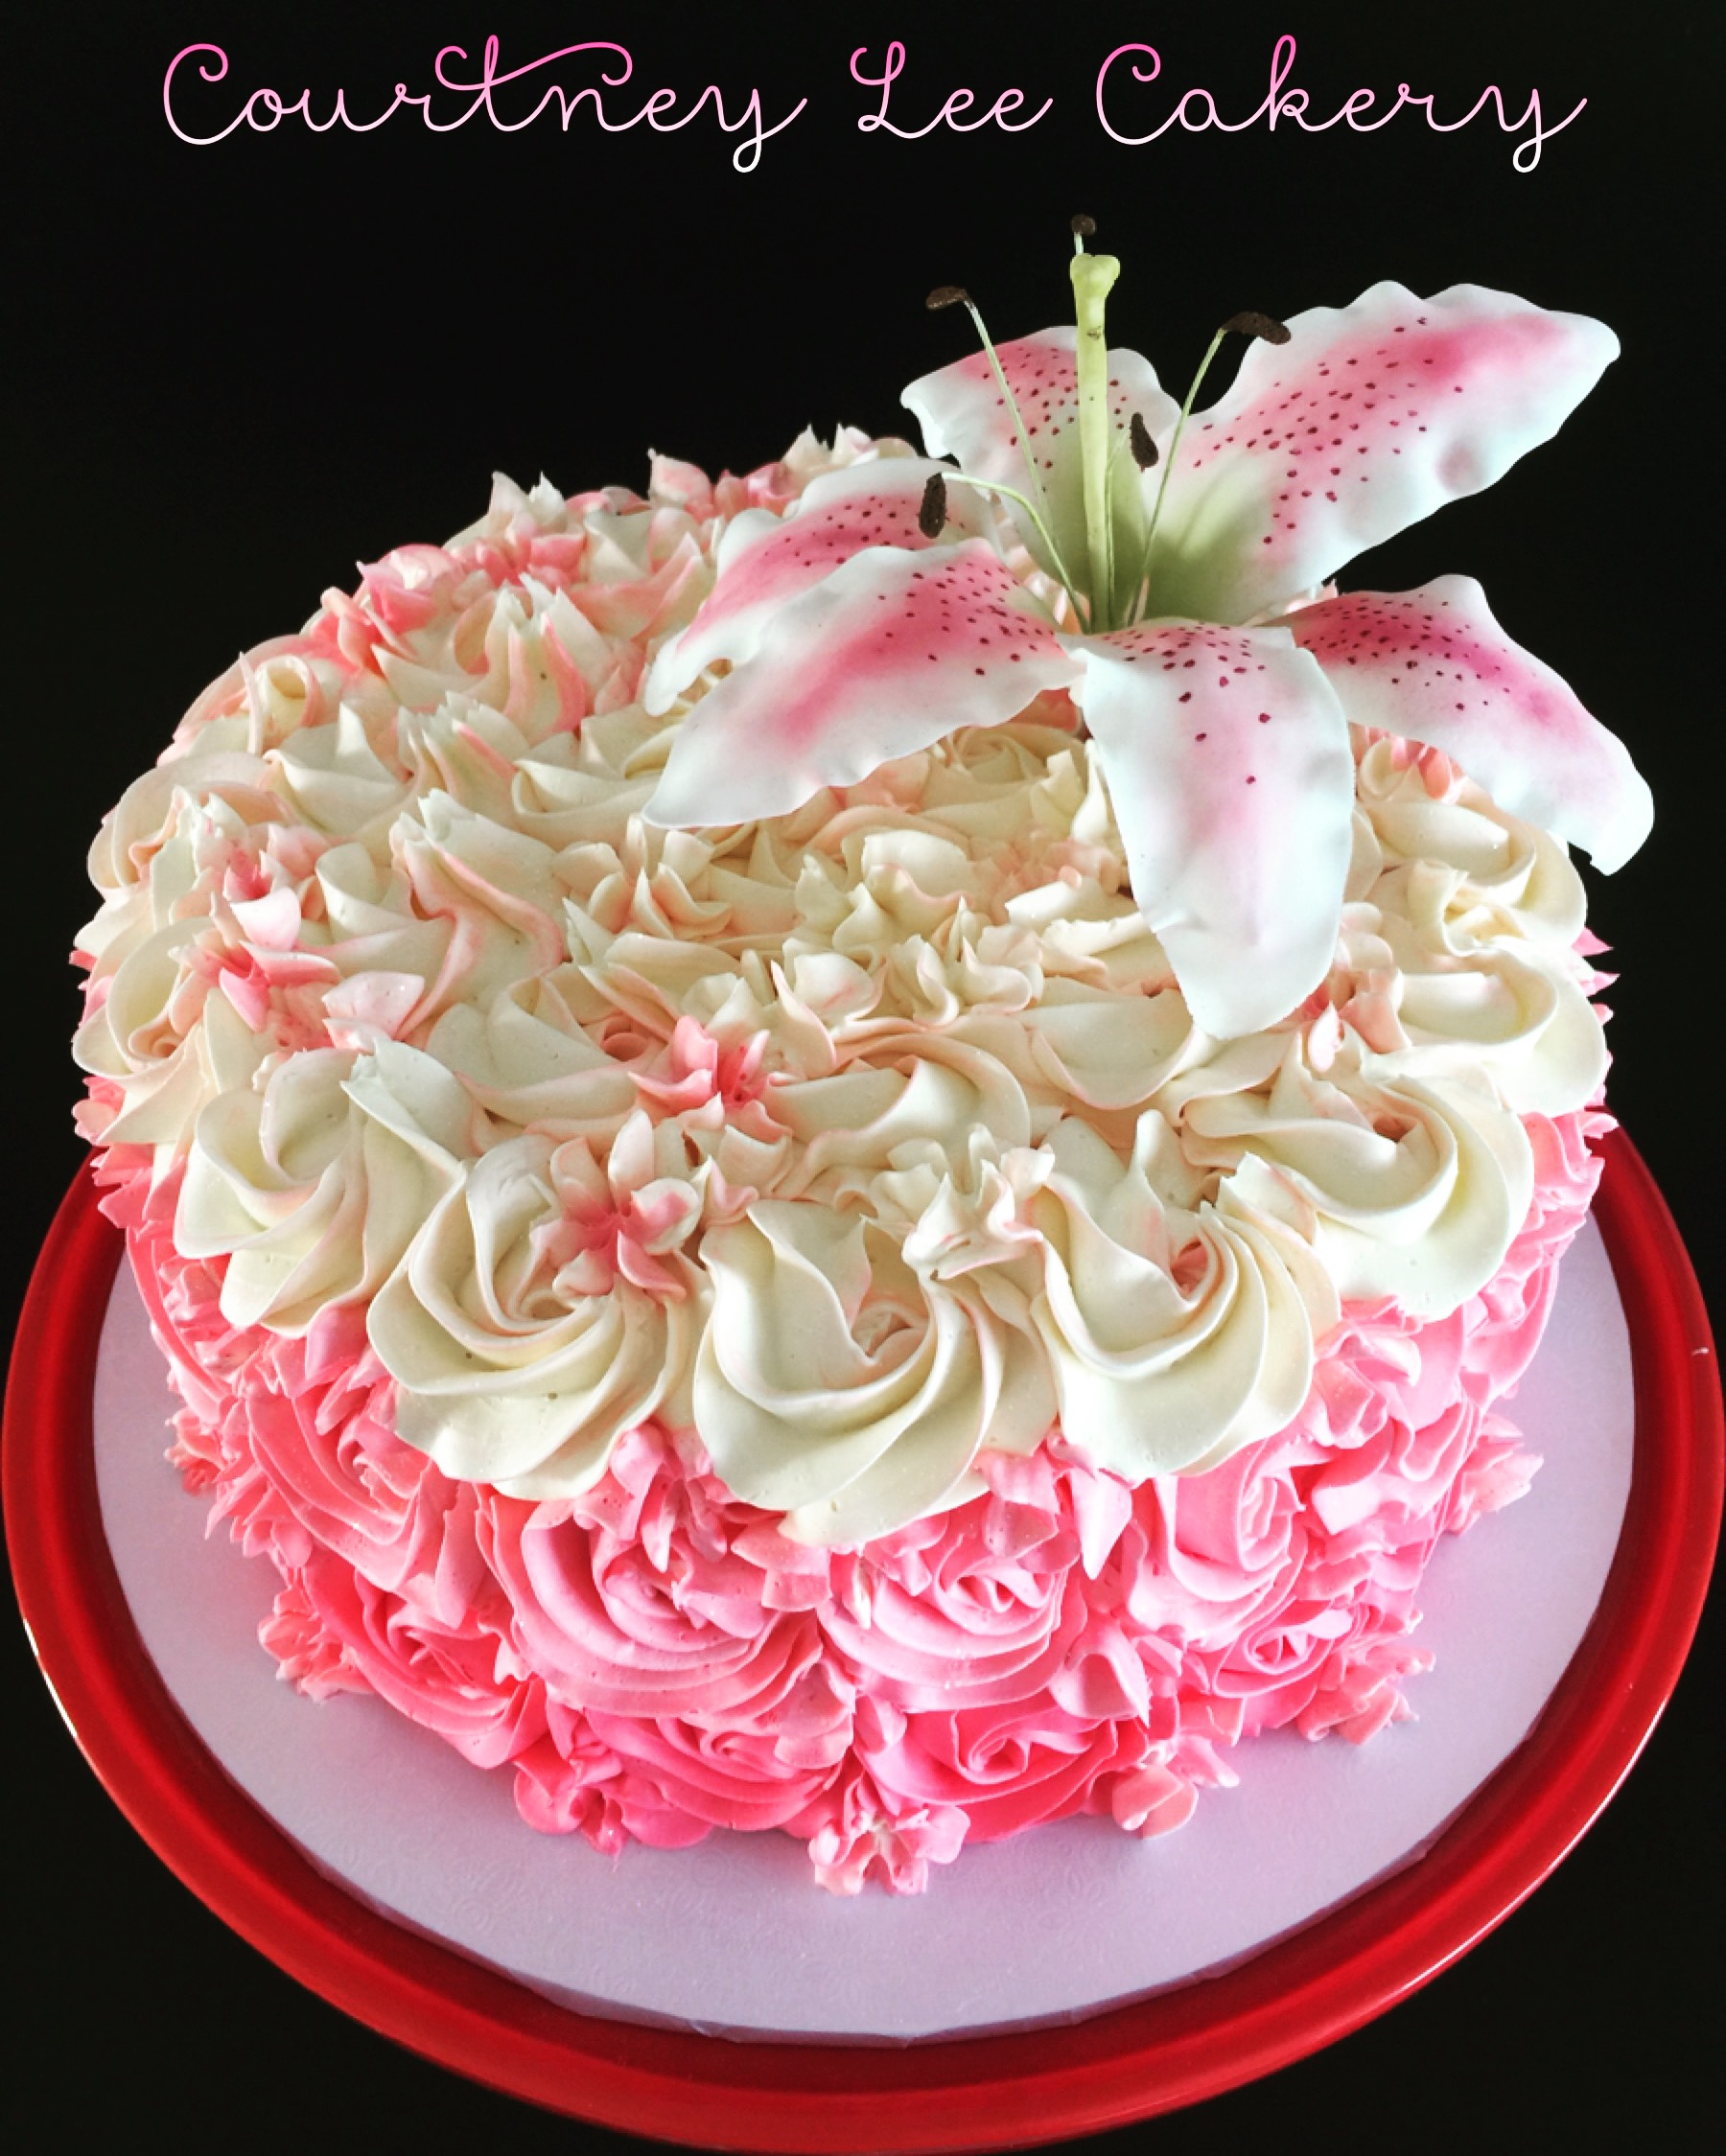 Rosette Cake with Lily